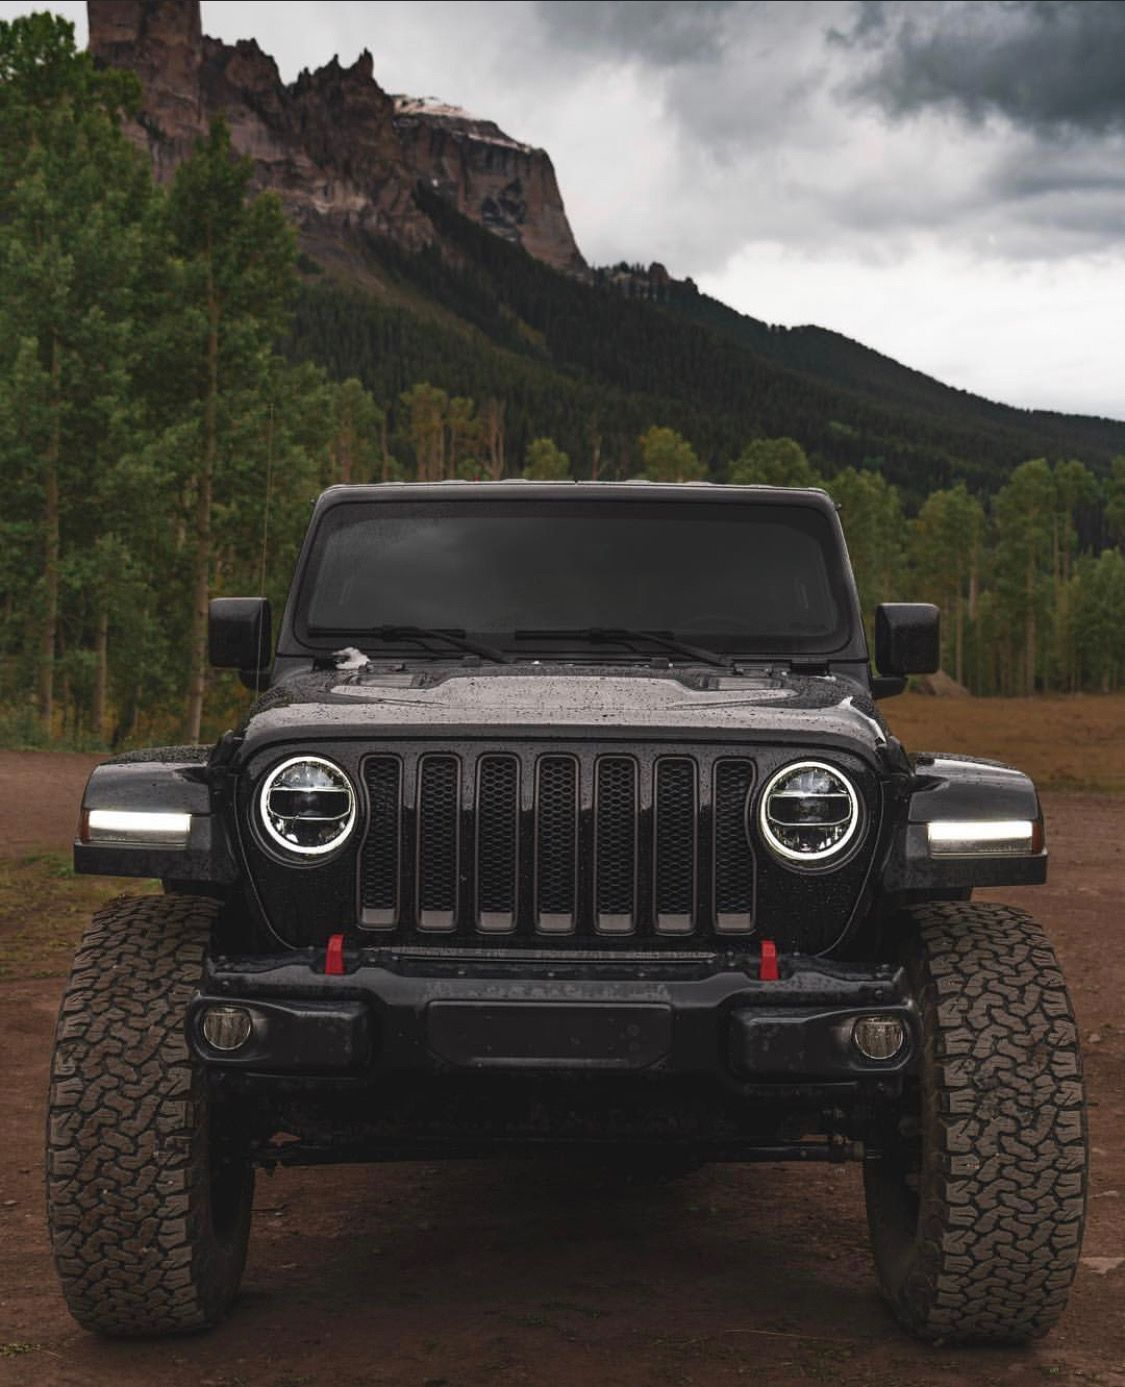 Black Jeep Wrangler Rubicon Jl In 2020 Jeep Wrangler Black Jeep Black Jeep Wrangler